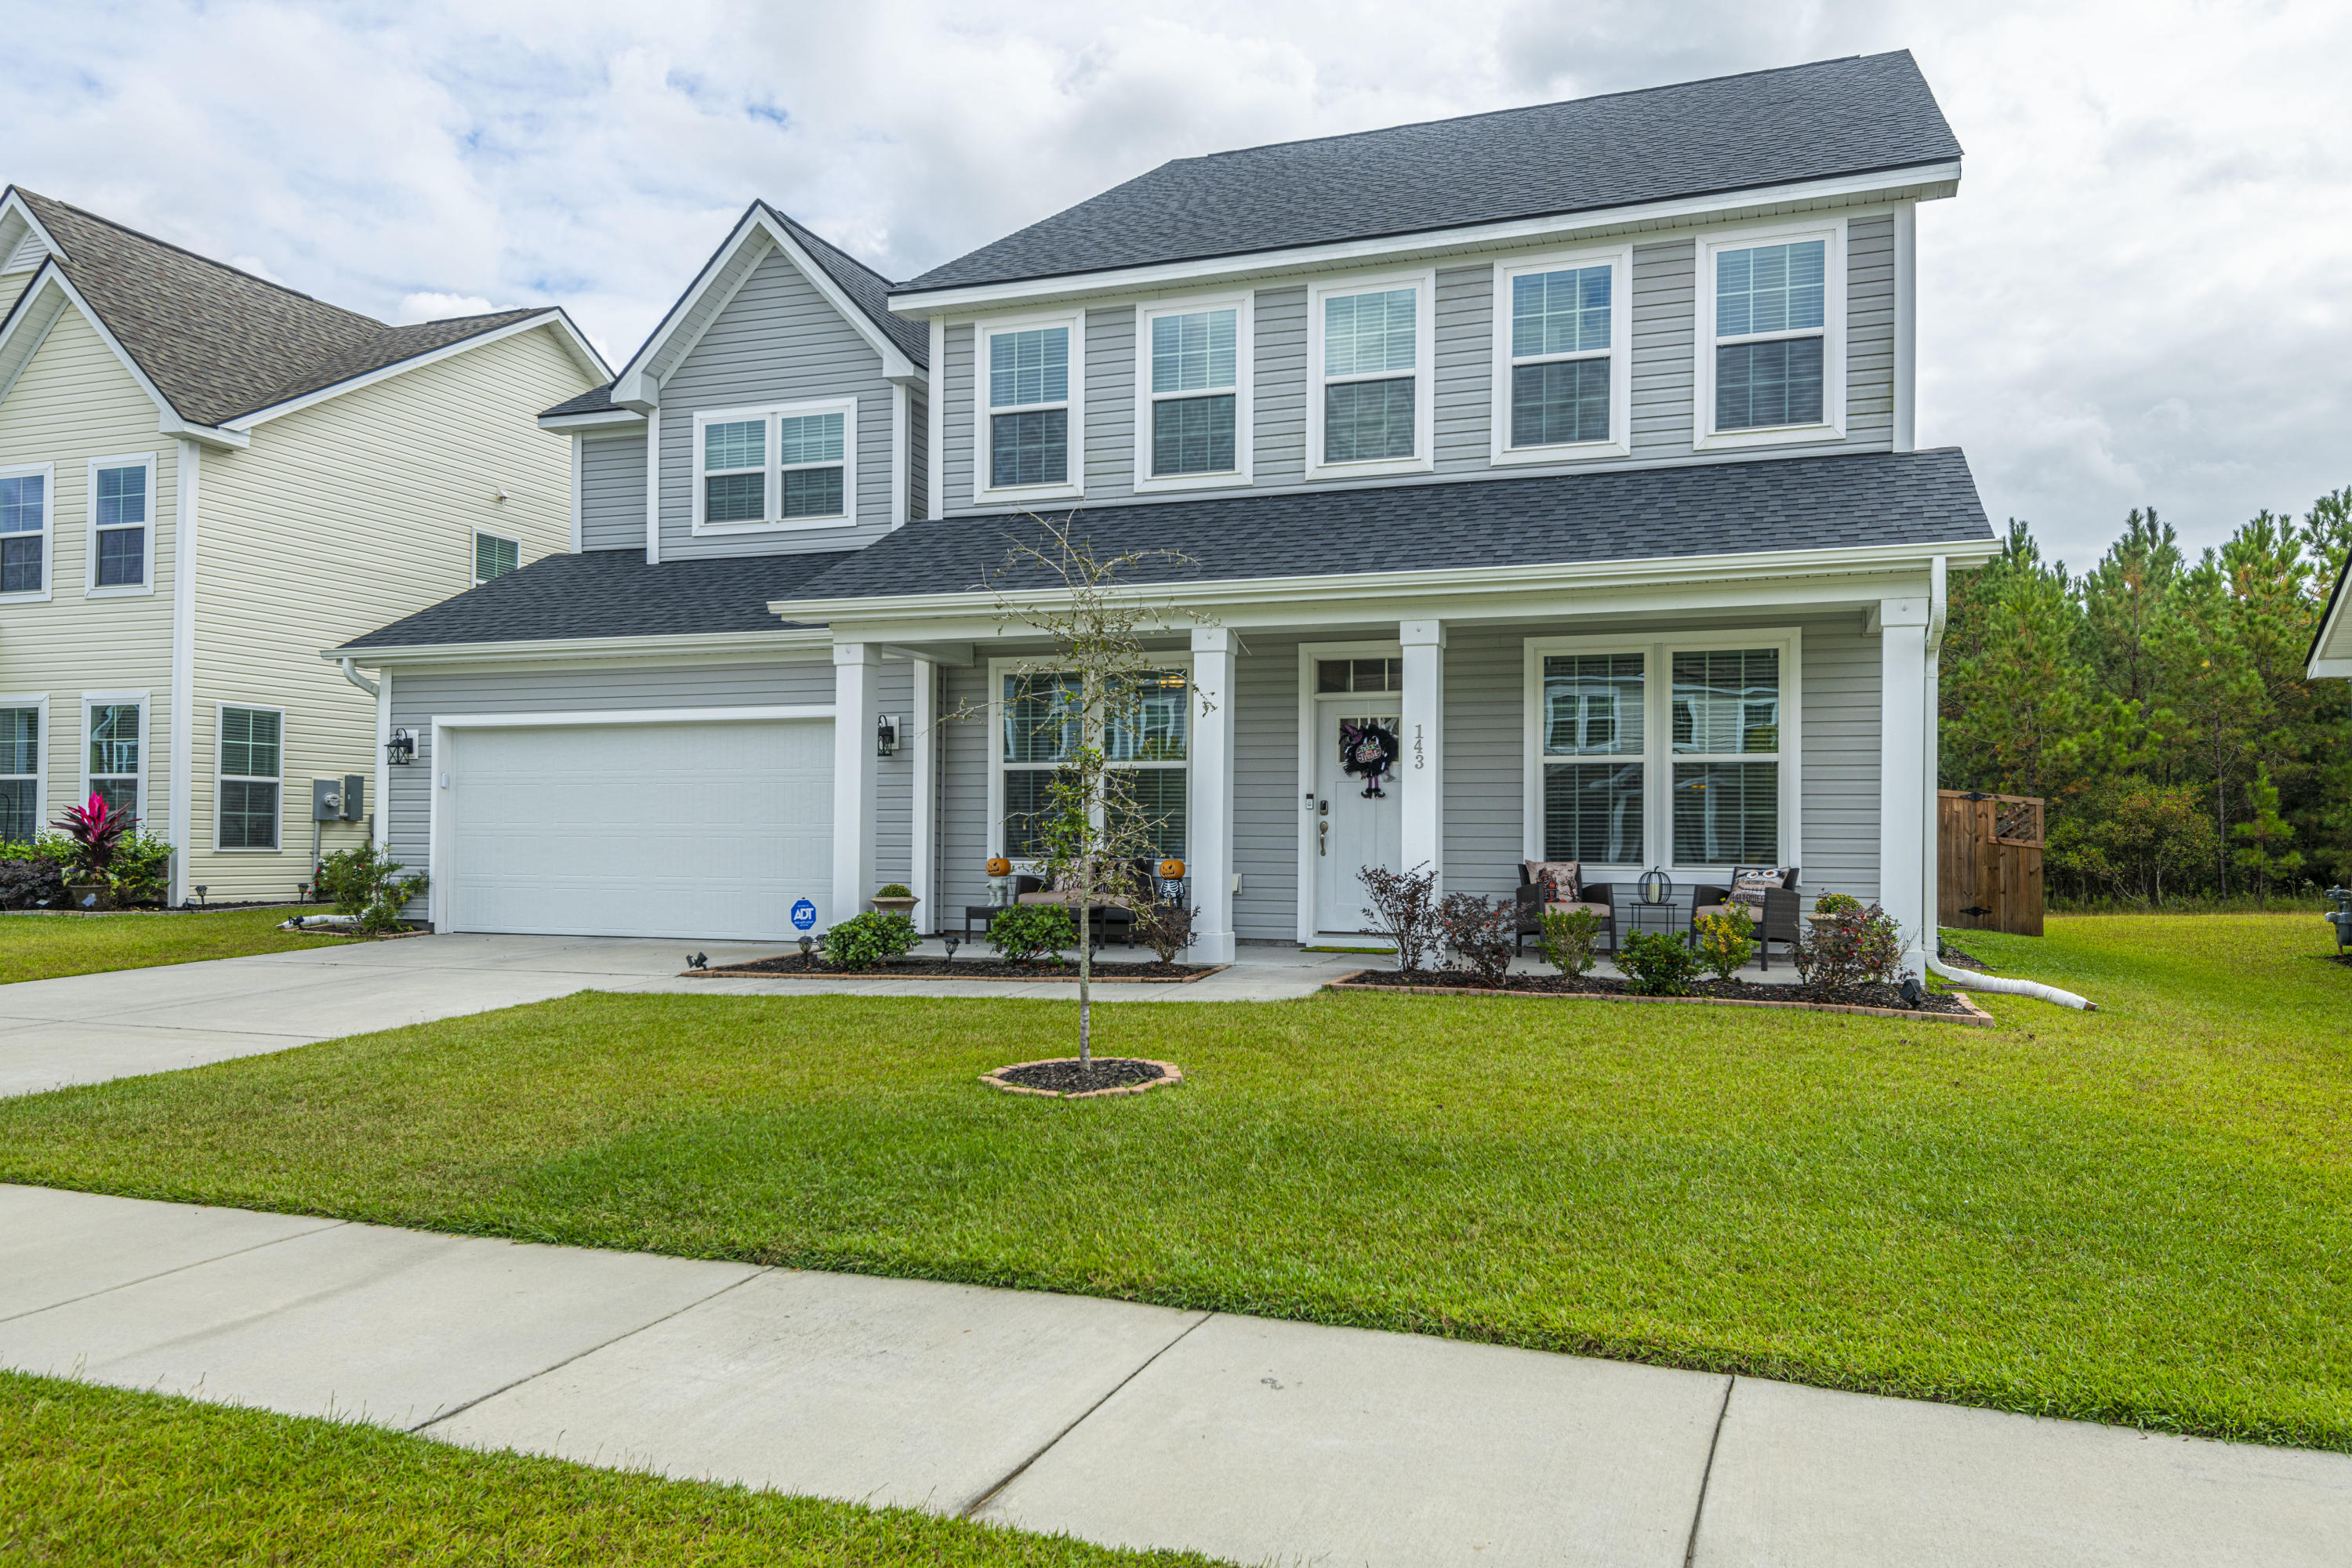 143 Koban Dori Road Summerville, SC 29486